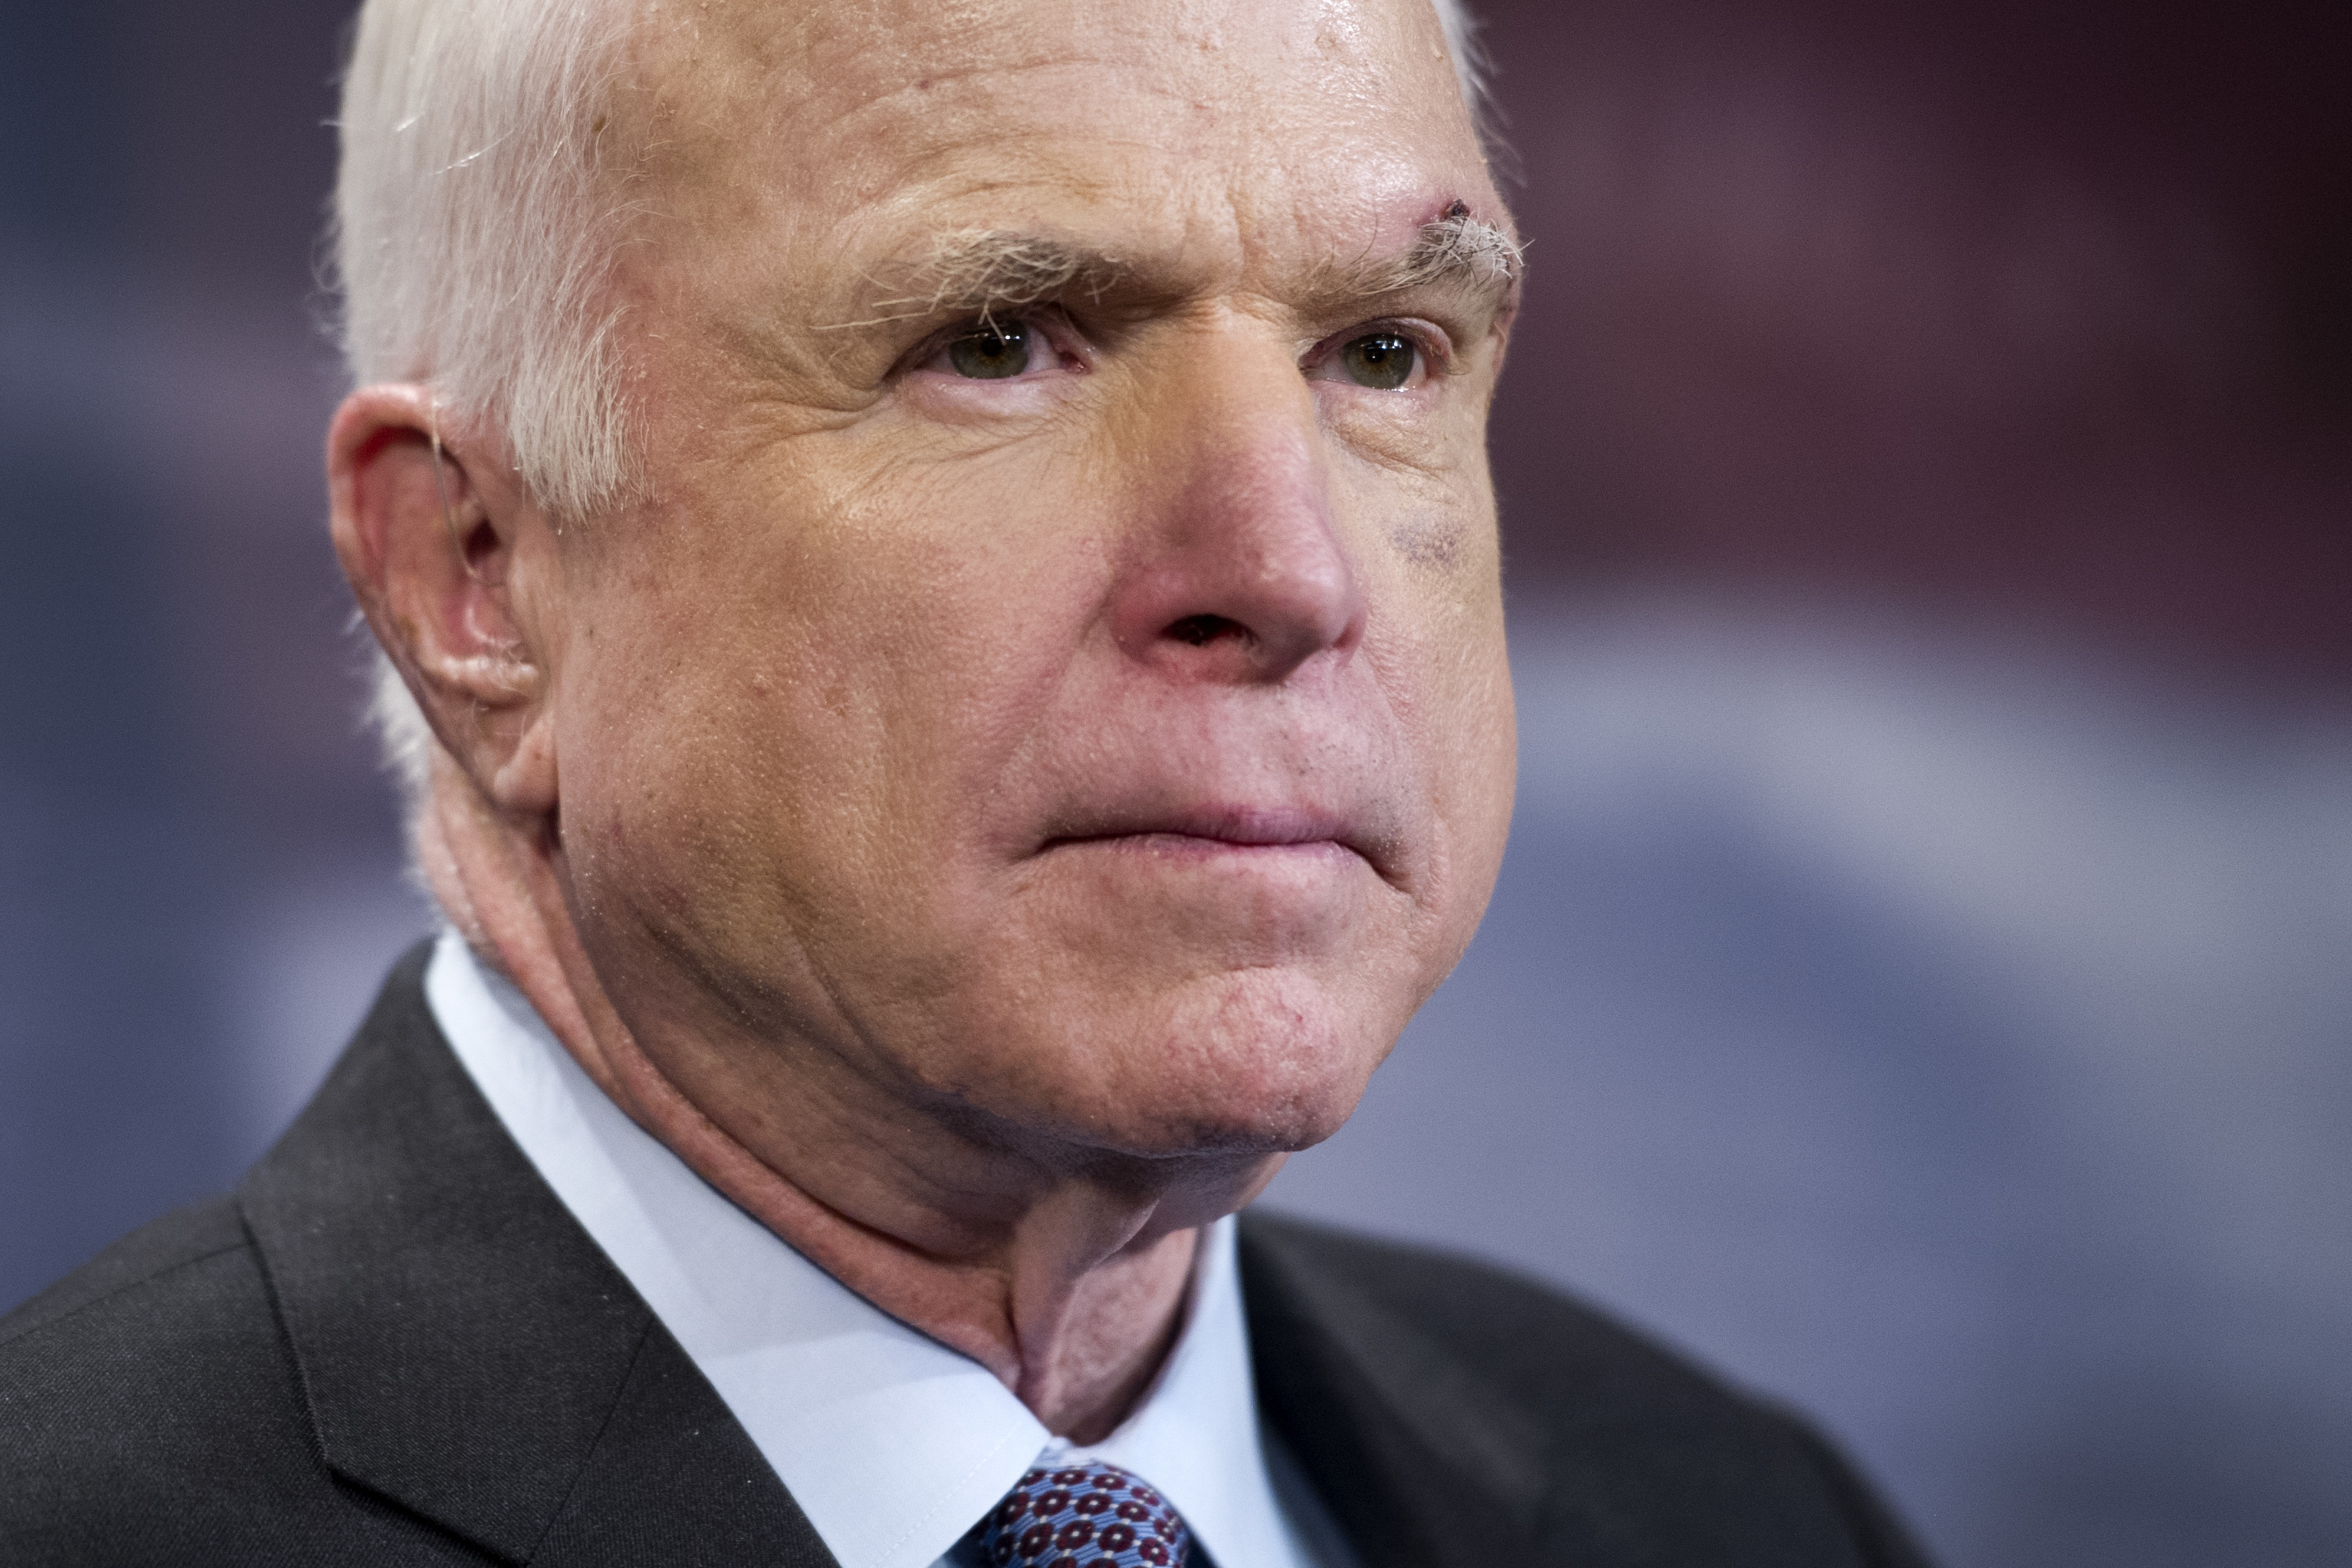 Trump's 'greener pastures' remark not about John McCain, White House says